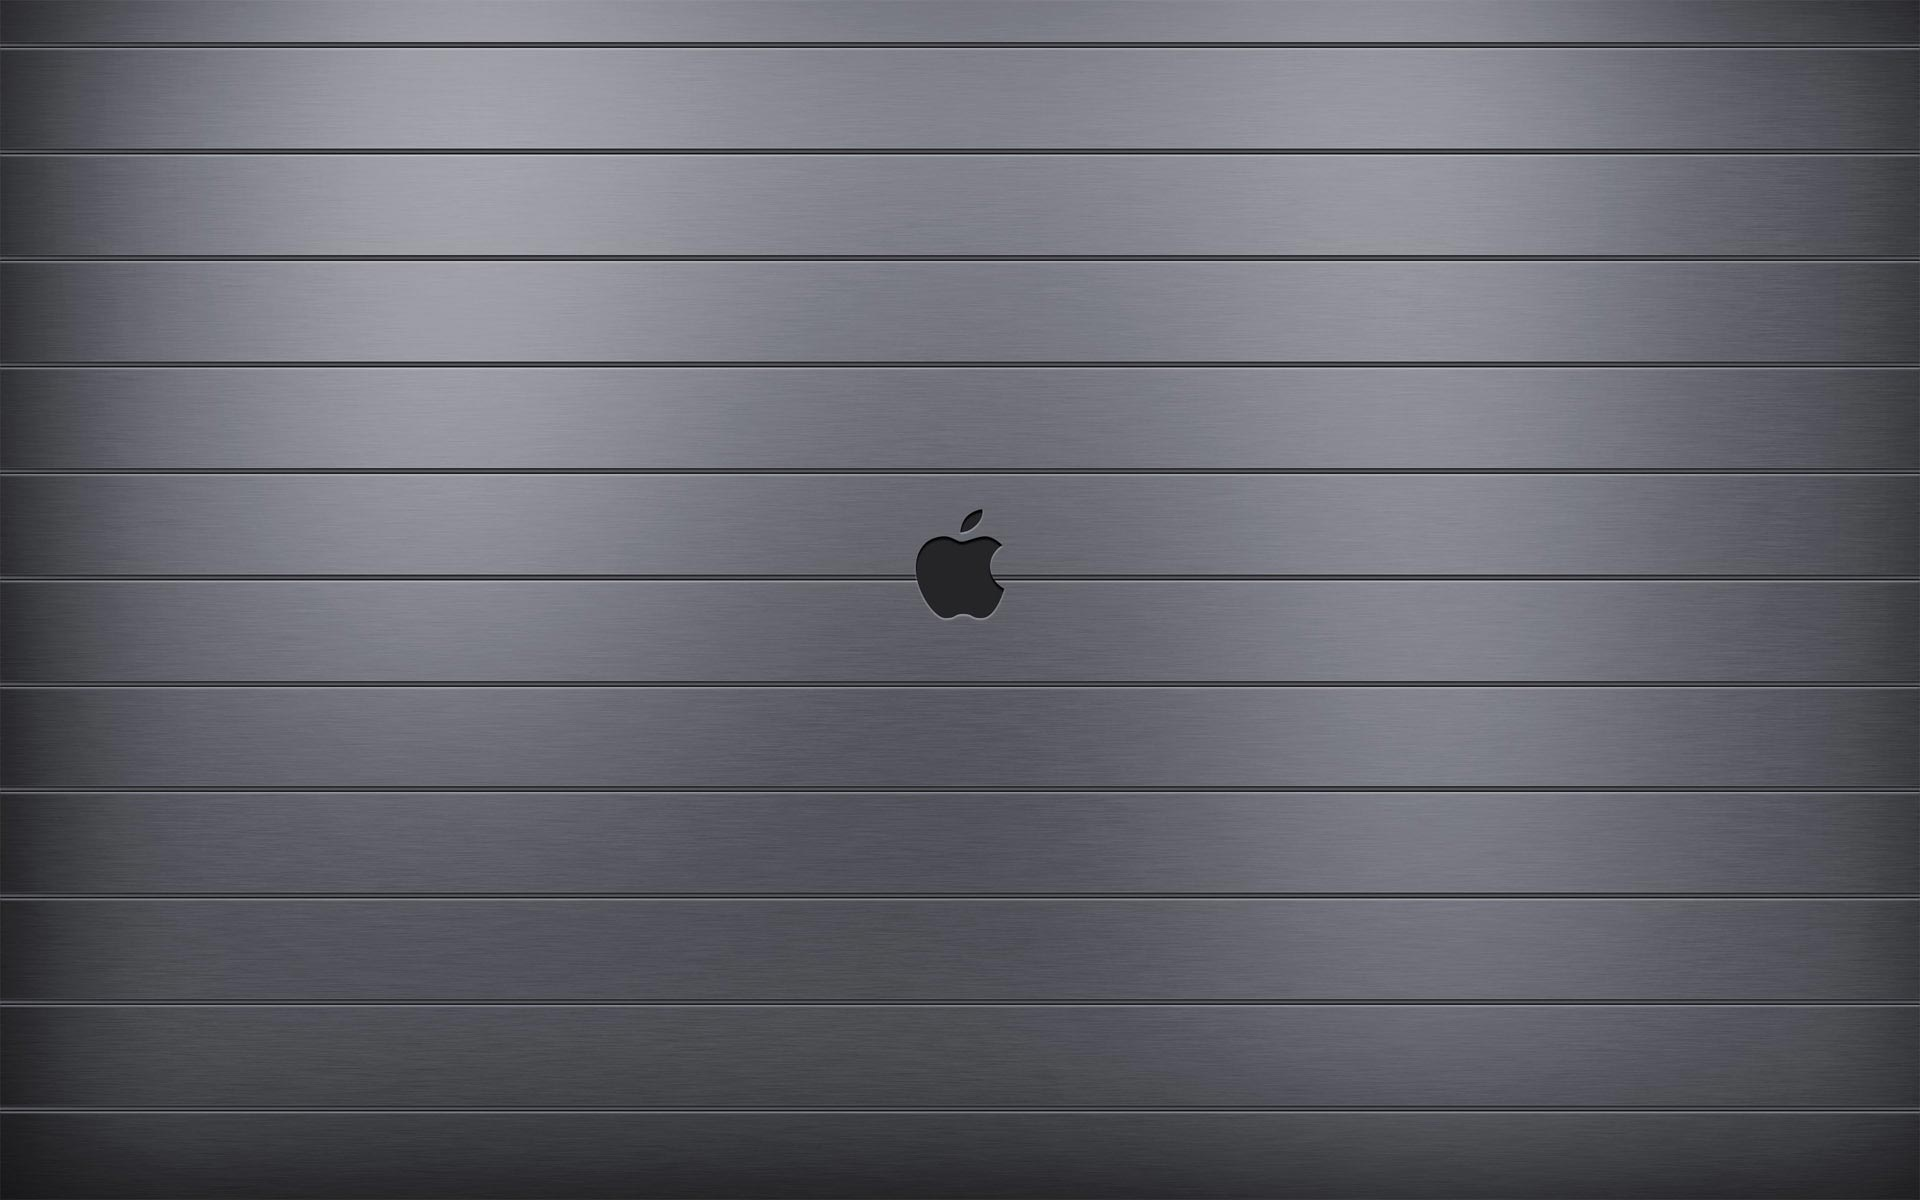 Backgrounds Apple MacBook Pro hd Wallpaper and make this wallpaper for 1920x1200